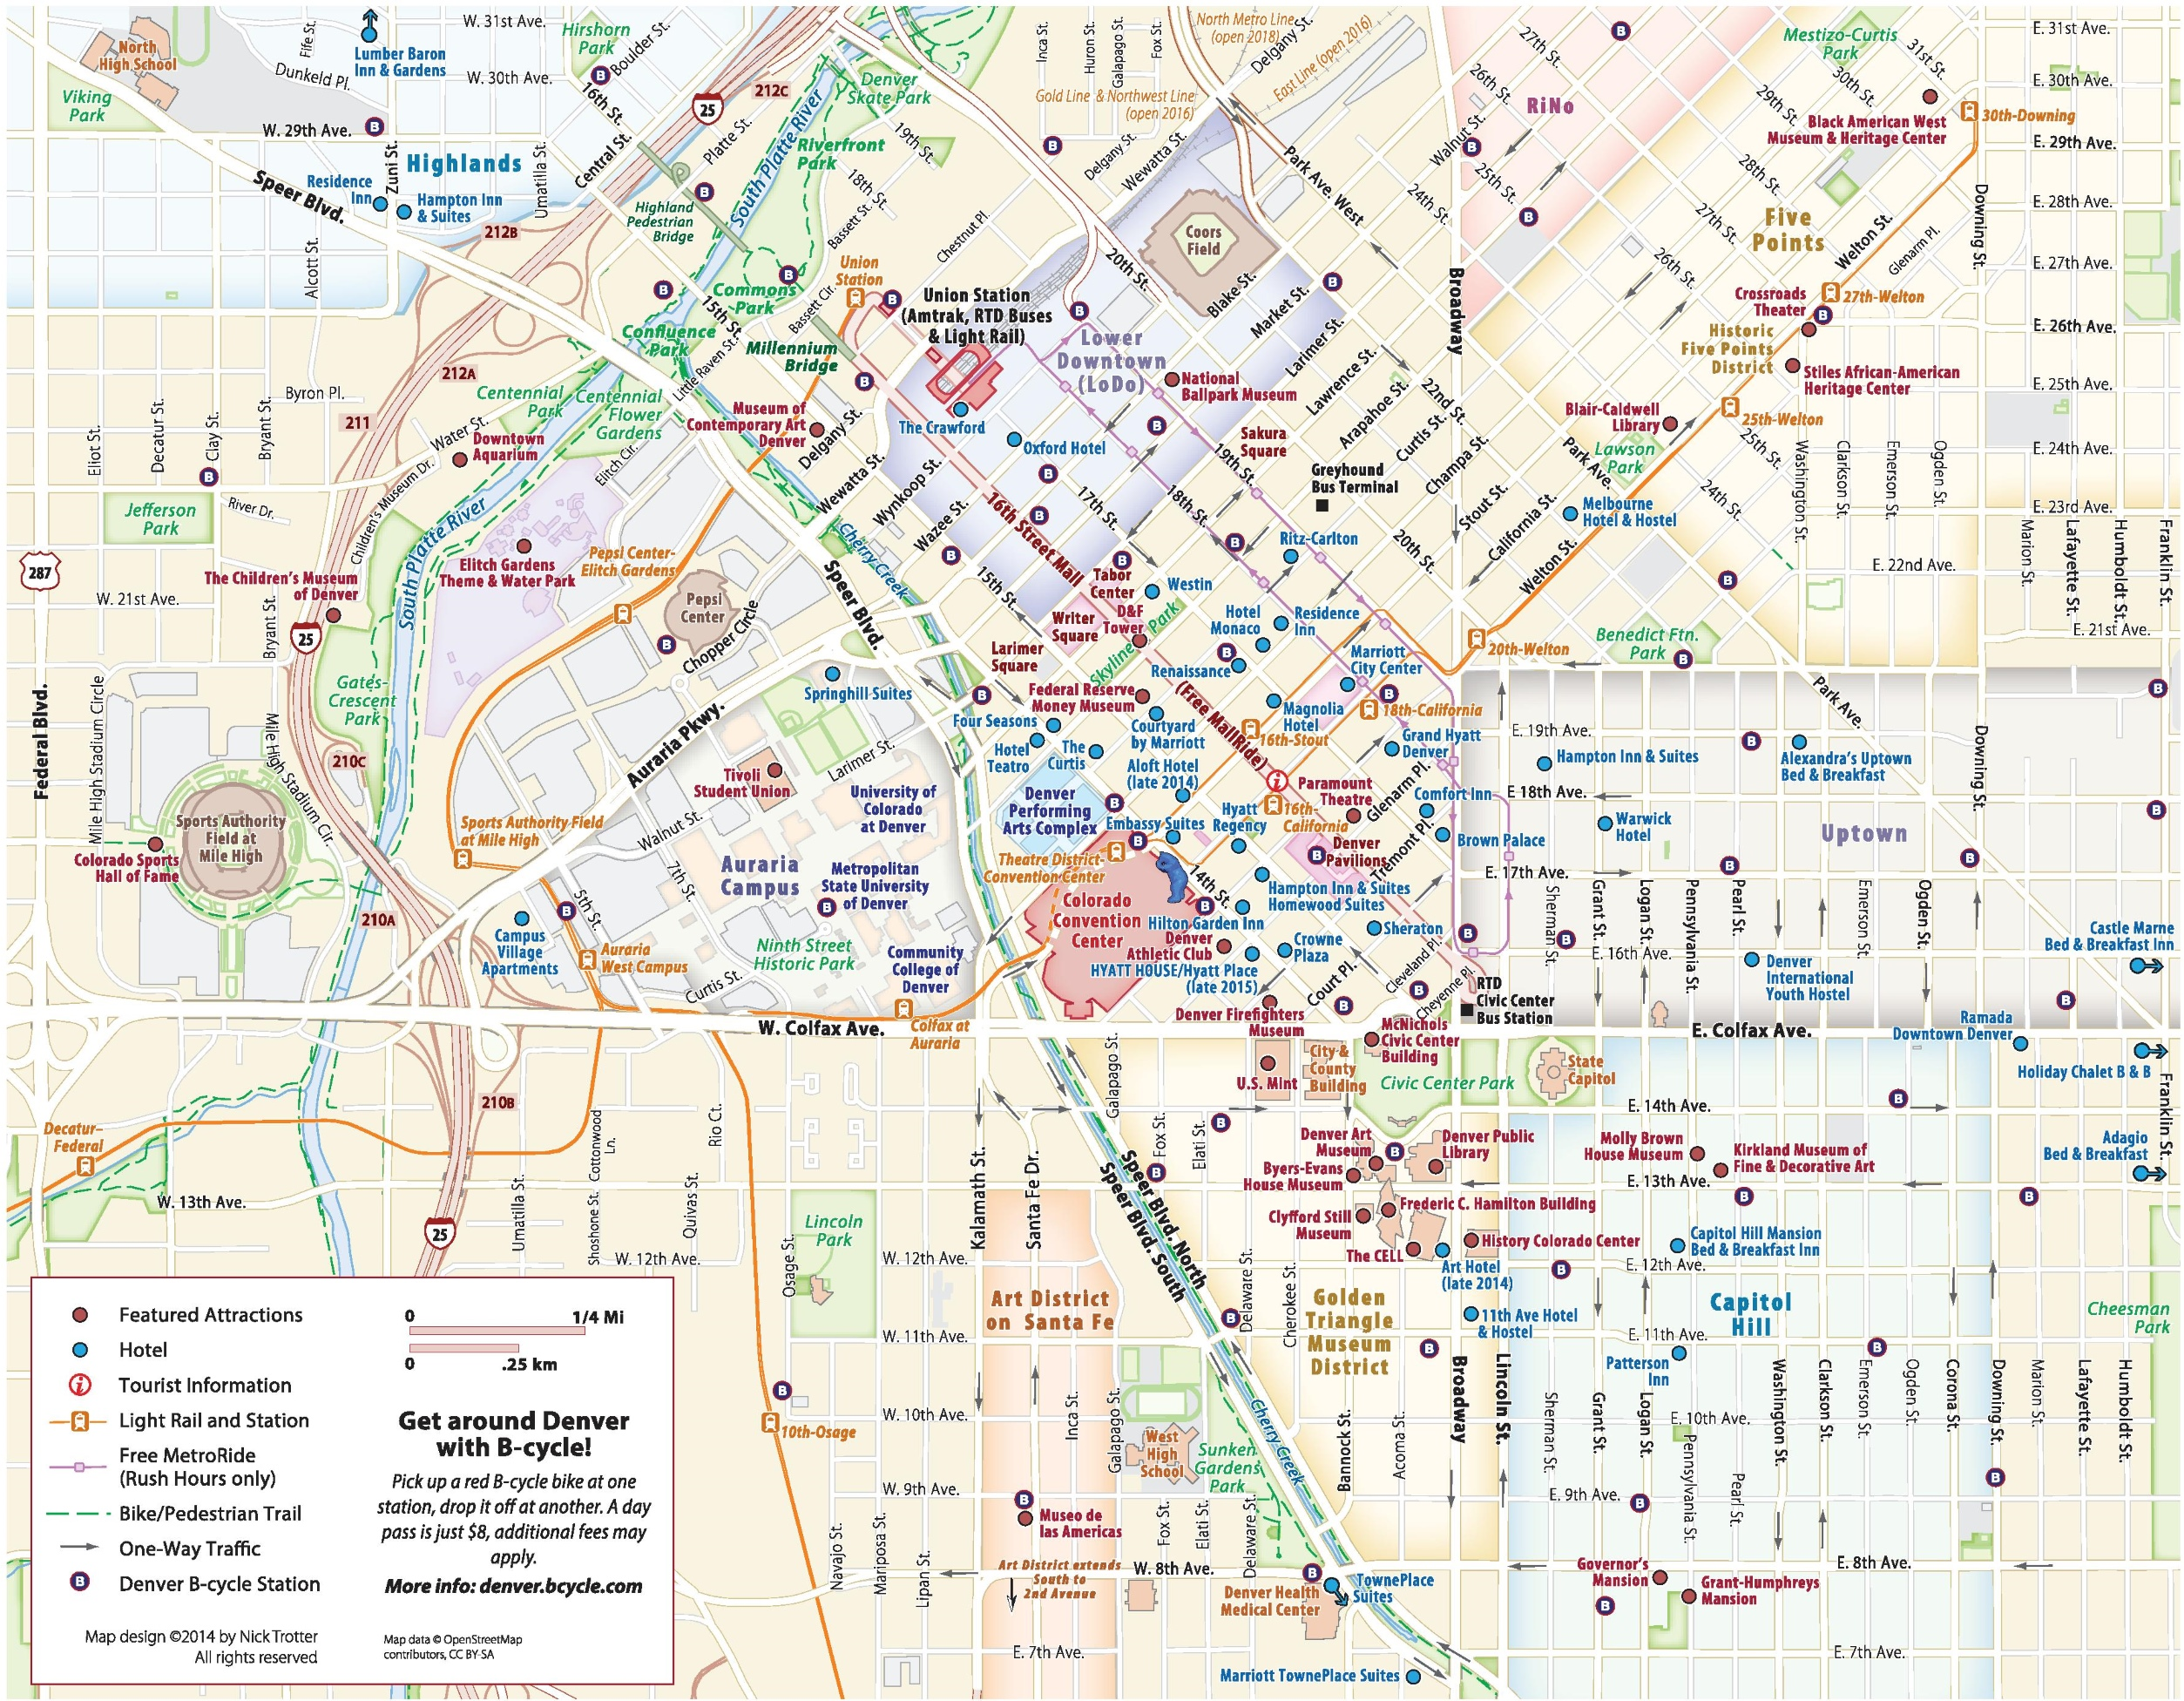 denver downtown hotels and sightseeings map -